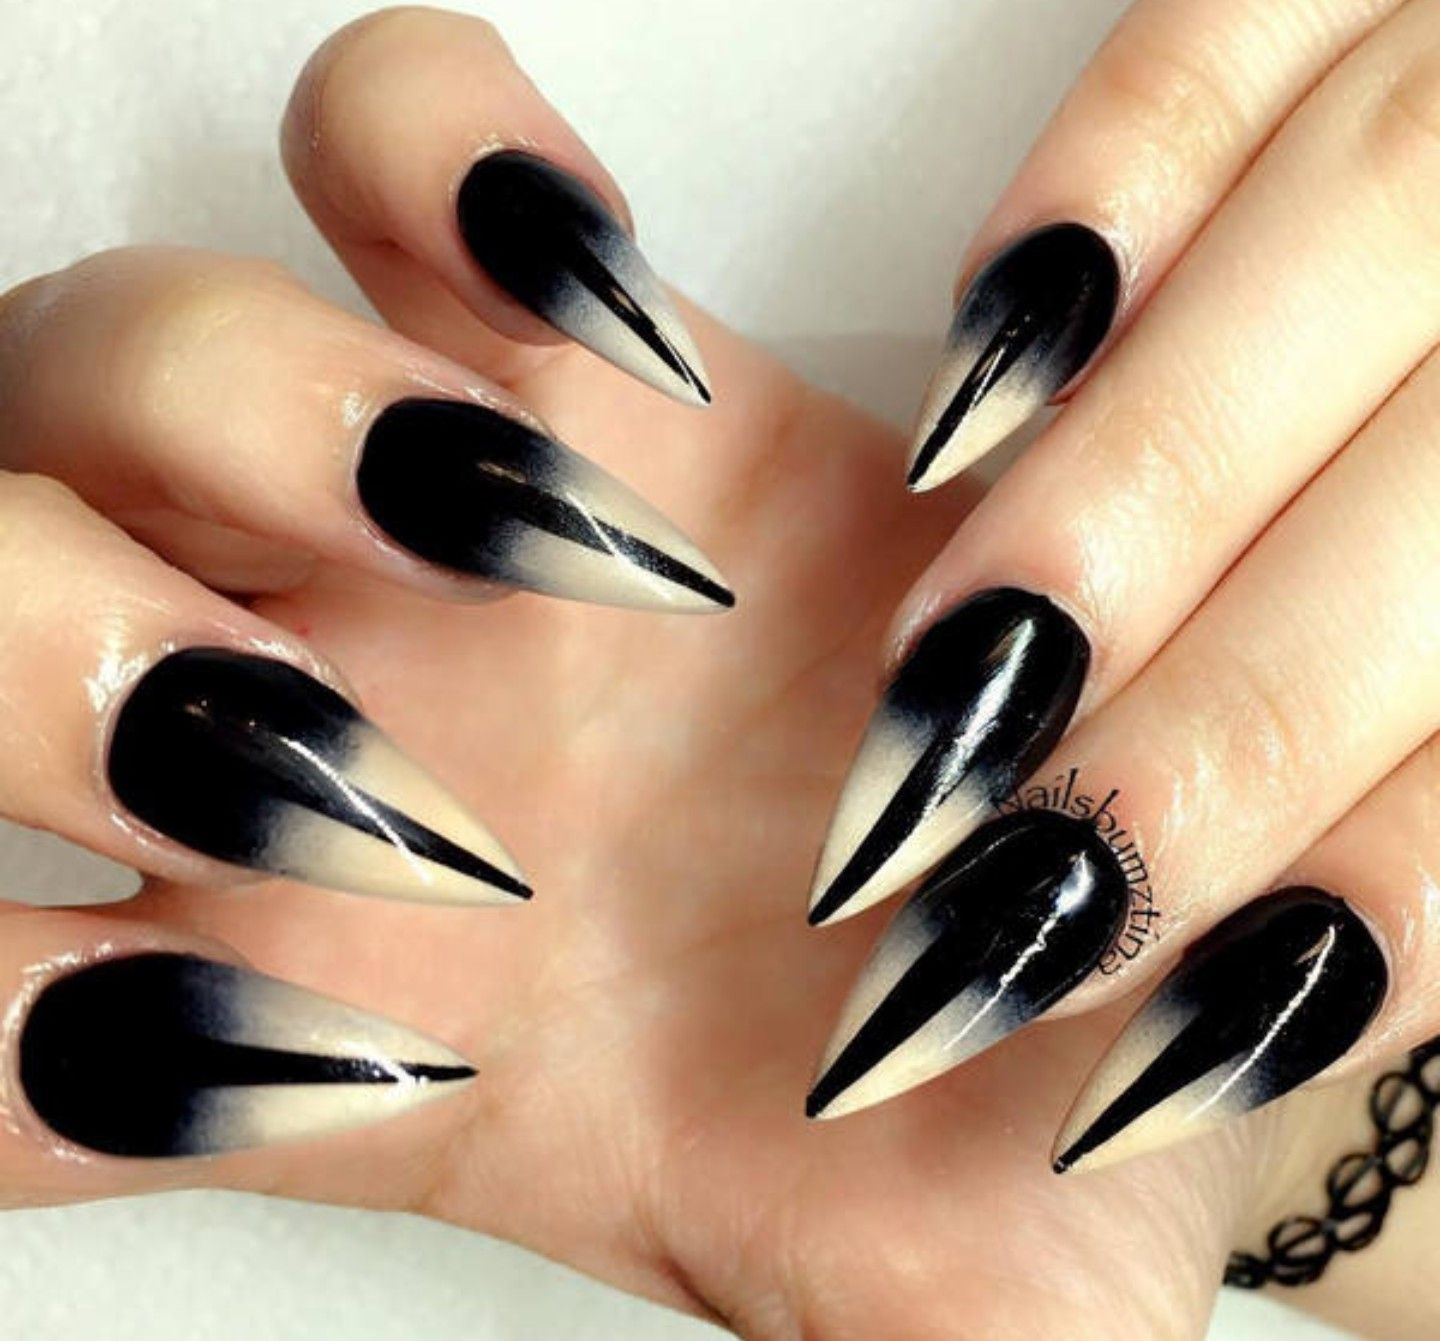 Pin By N On Nails Pinterest Make Up Manicure And Hair Make Up